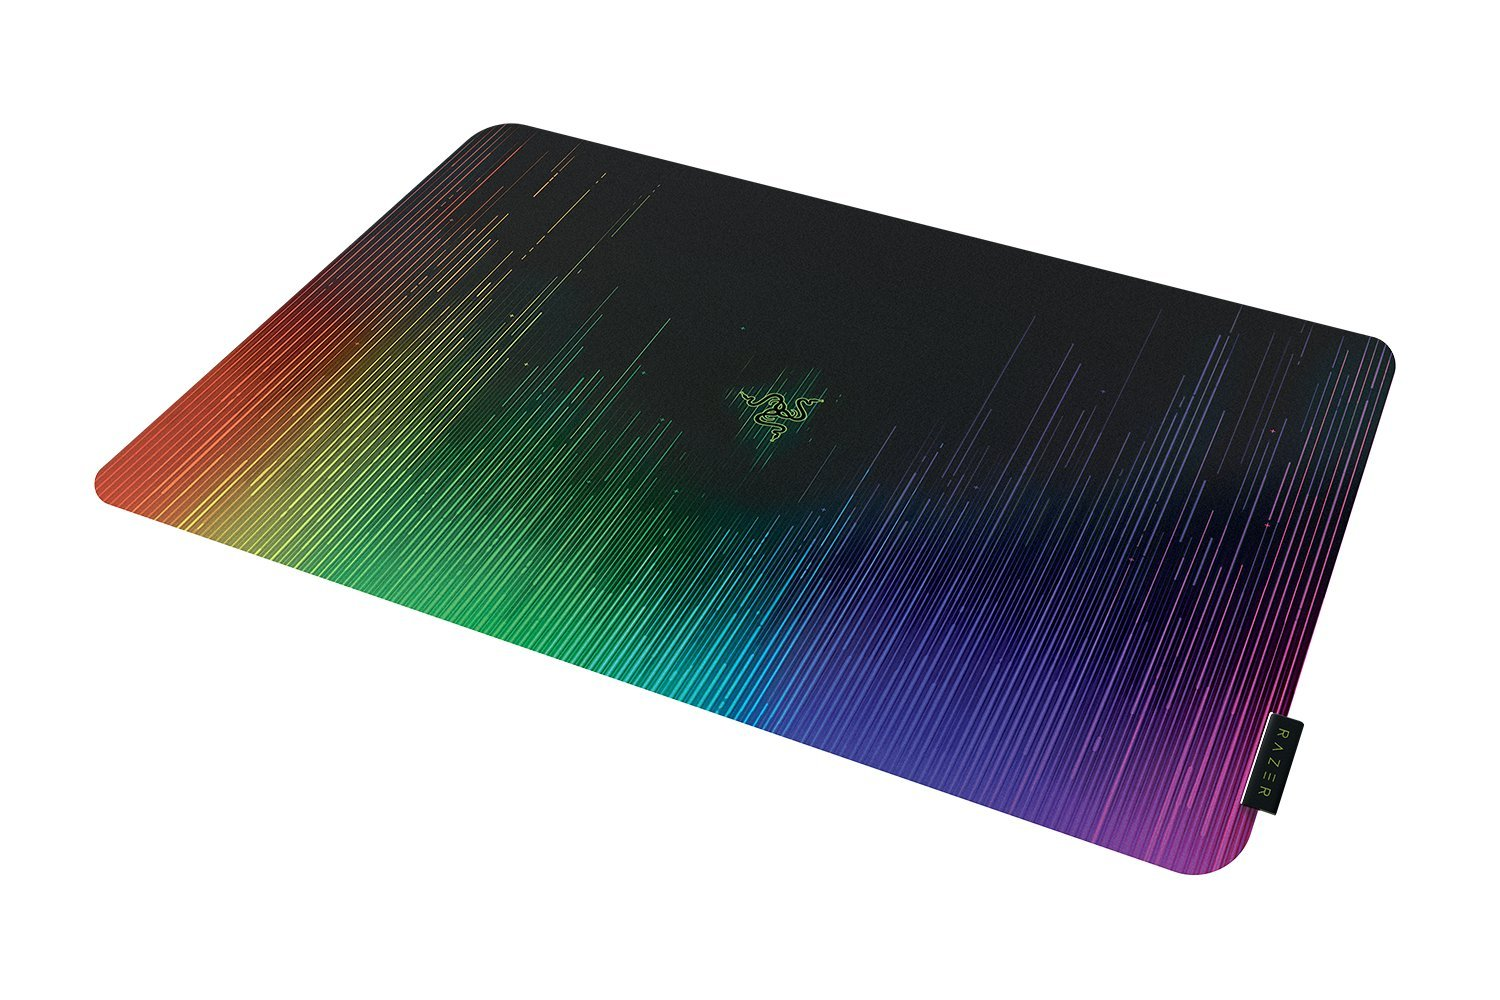 Razer Sphex V2 Gaming Mouse Pad - RZ02-01940100-R3M1